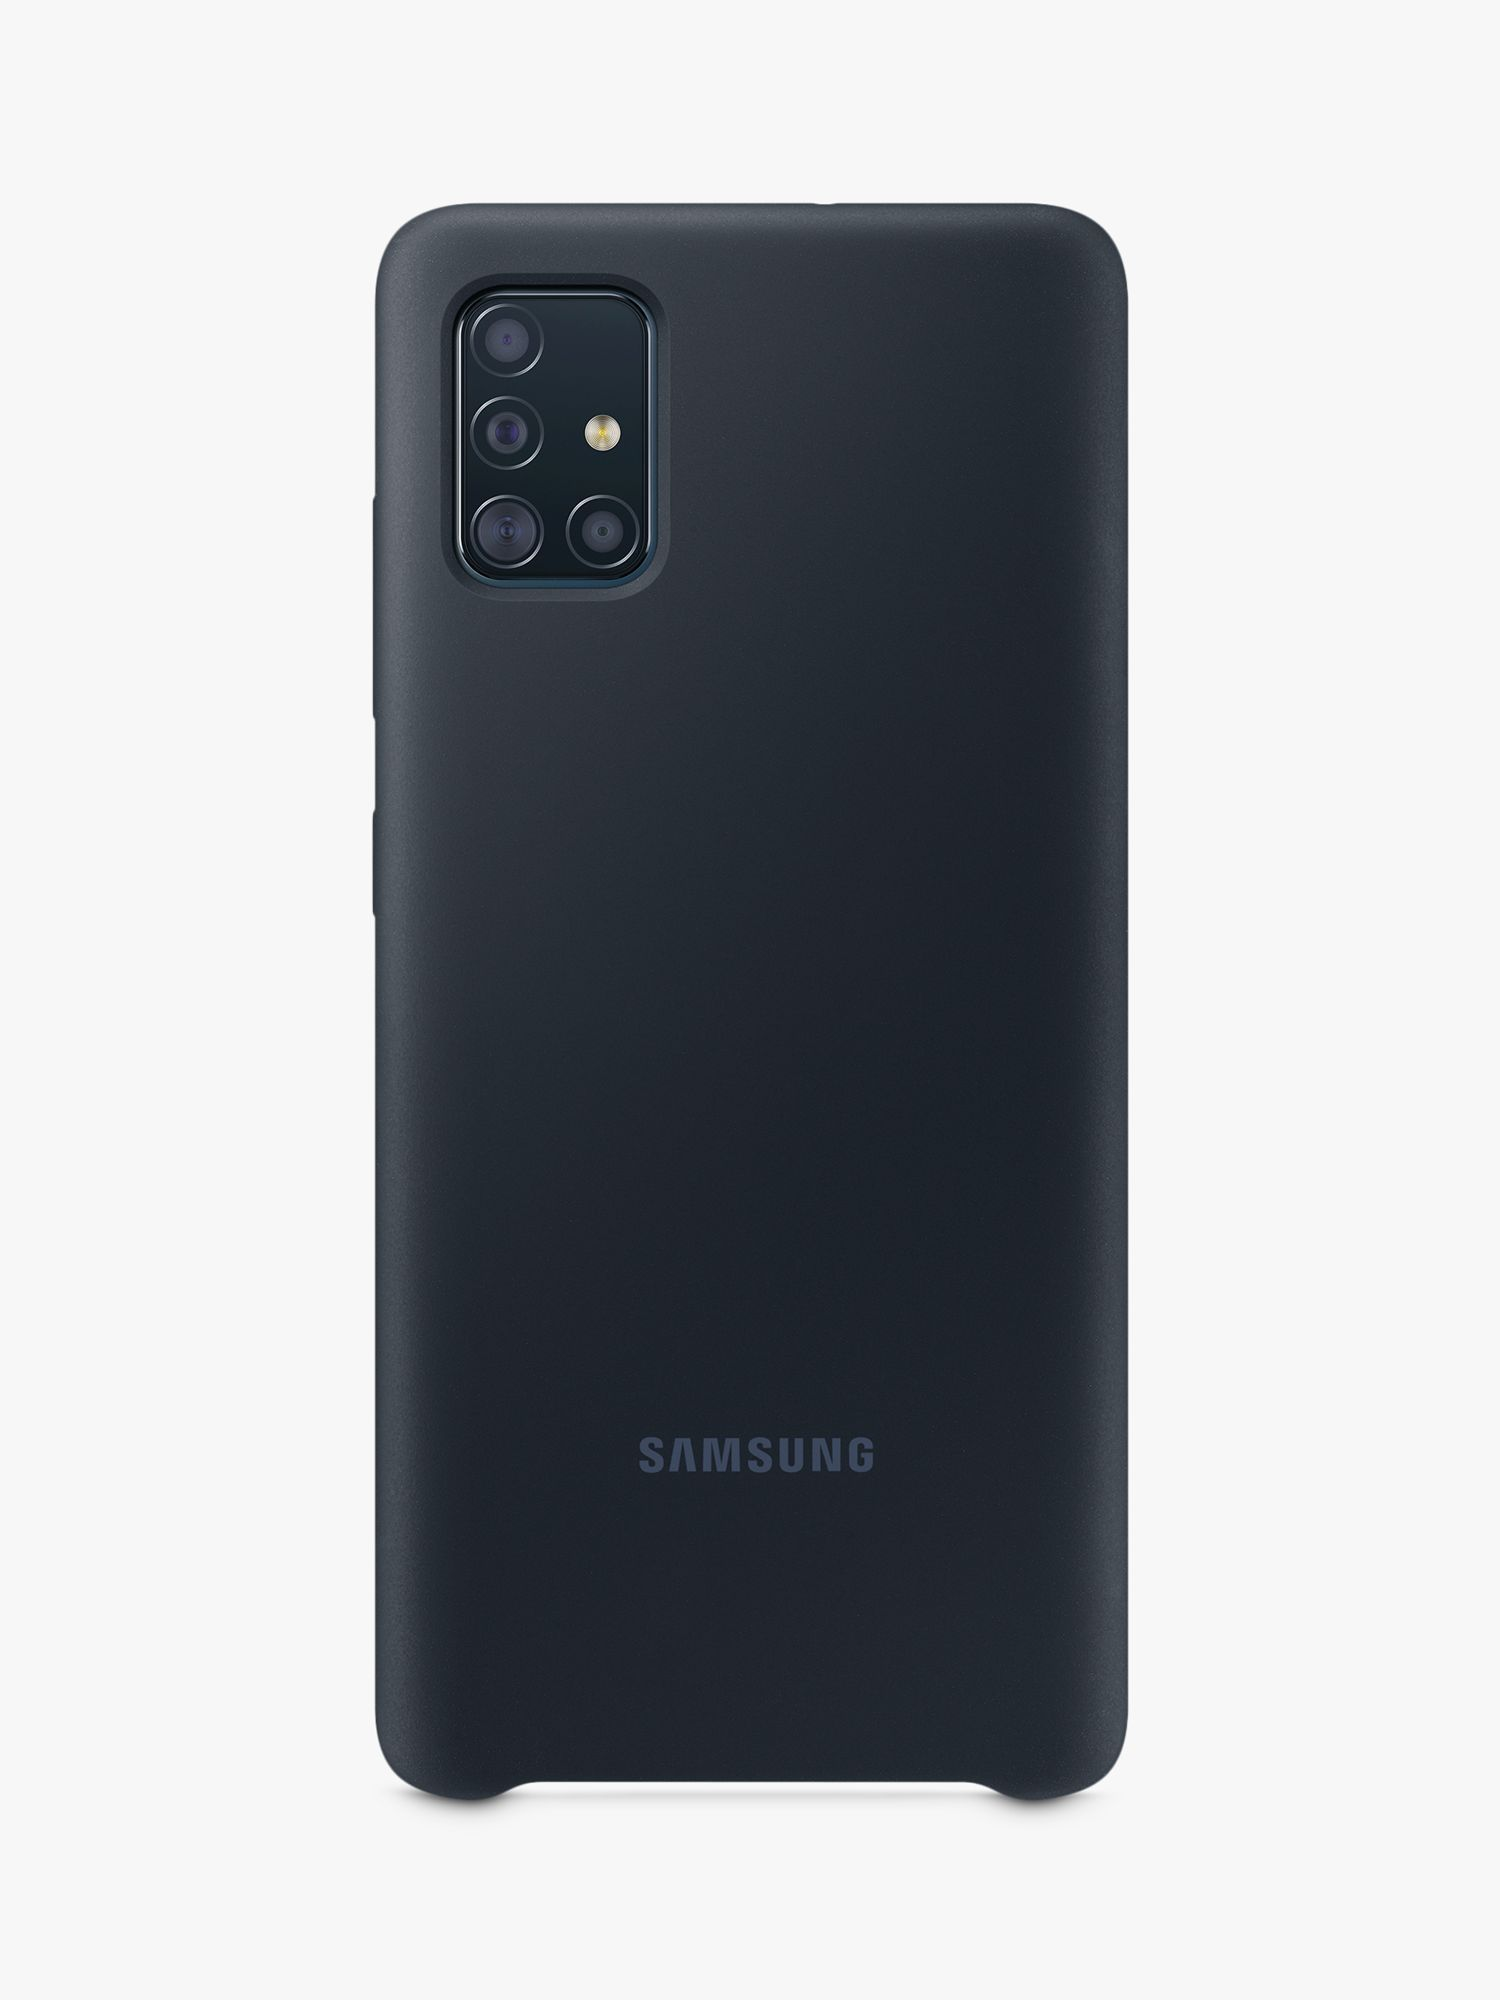 Samsung Galaxy A51 Soft Touch Cover Black In 2020 Samsung Galaxy Samsung Mobile Phone Cases